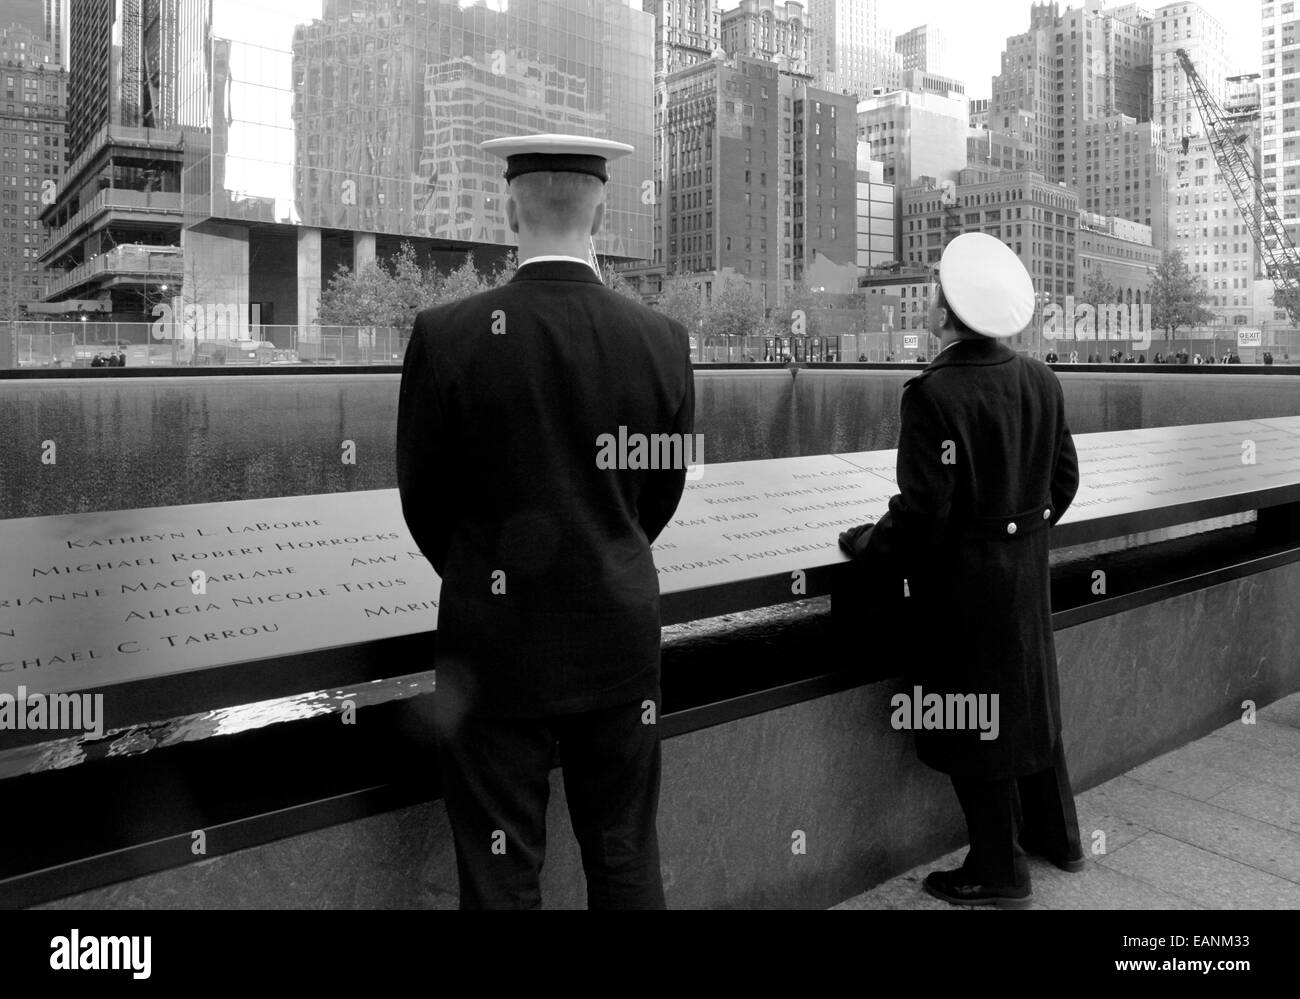 Servicemen pause at the Ground Zero memorial to remember those killed in the 9/11 terrorist attacks. NYC. 19/11/2011 - Stock Image